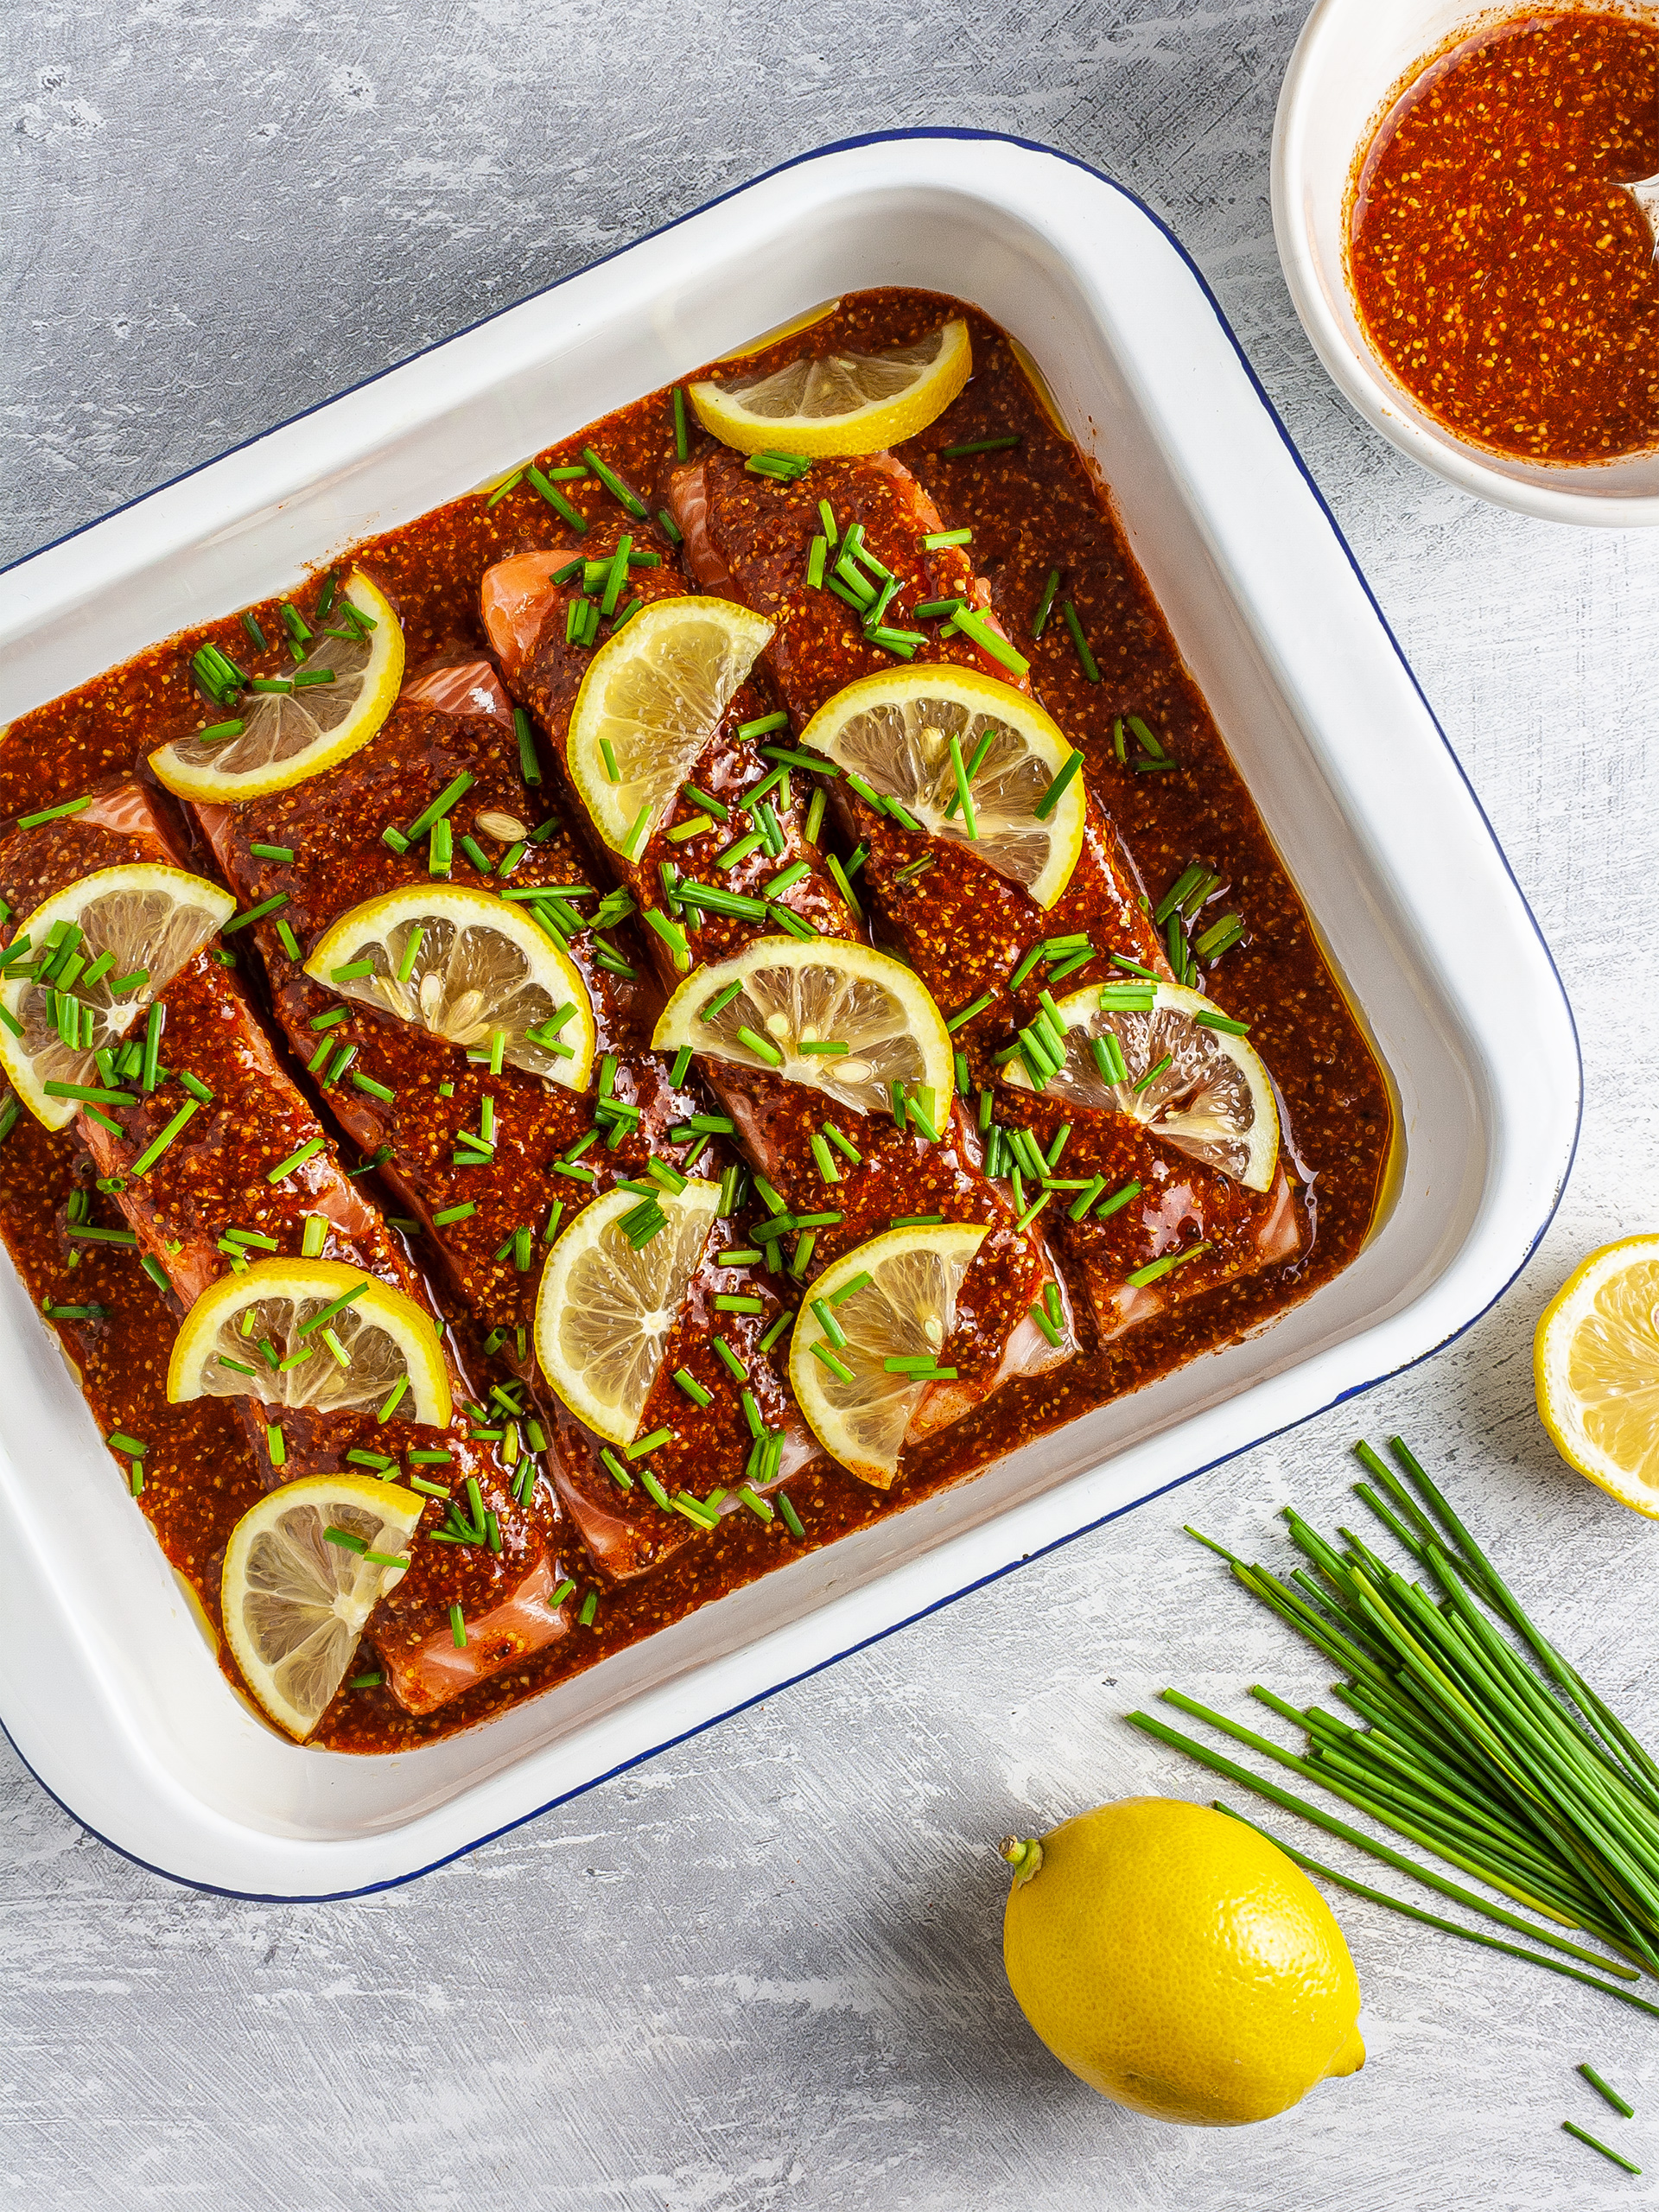 Salmon fillets with honey mustard glaze, lemon, and chives